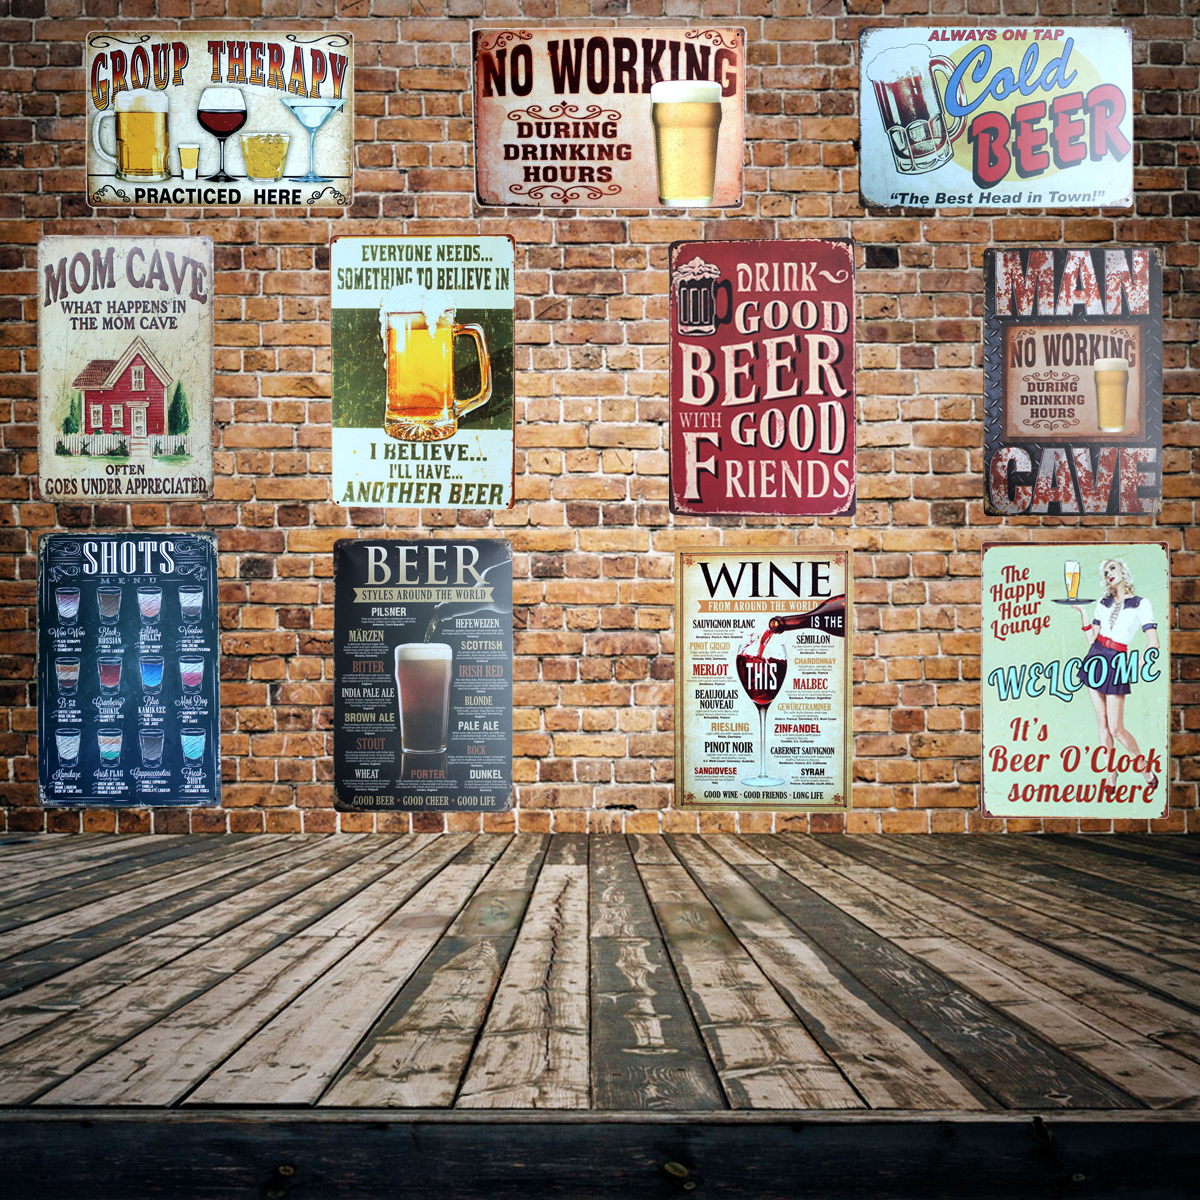 [Mike86] Beer Pratice Here Metal Sign PUB Home Hotel Decoration Vintage Նկարչական Պատի պաստառ Art 20 * 30 CM Խառը նյութեր AA-455